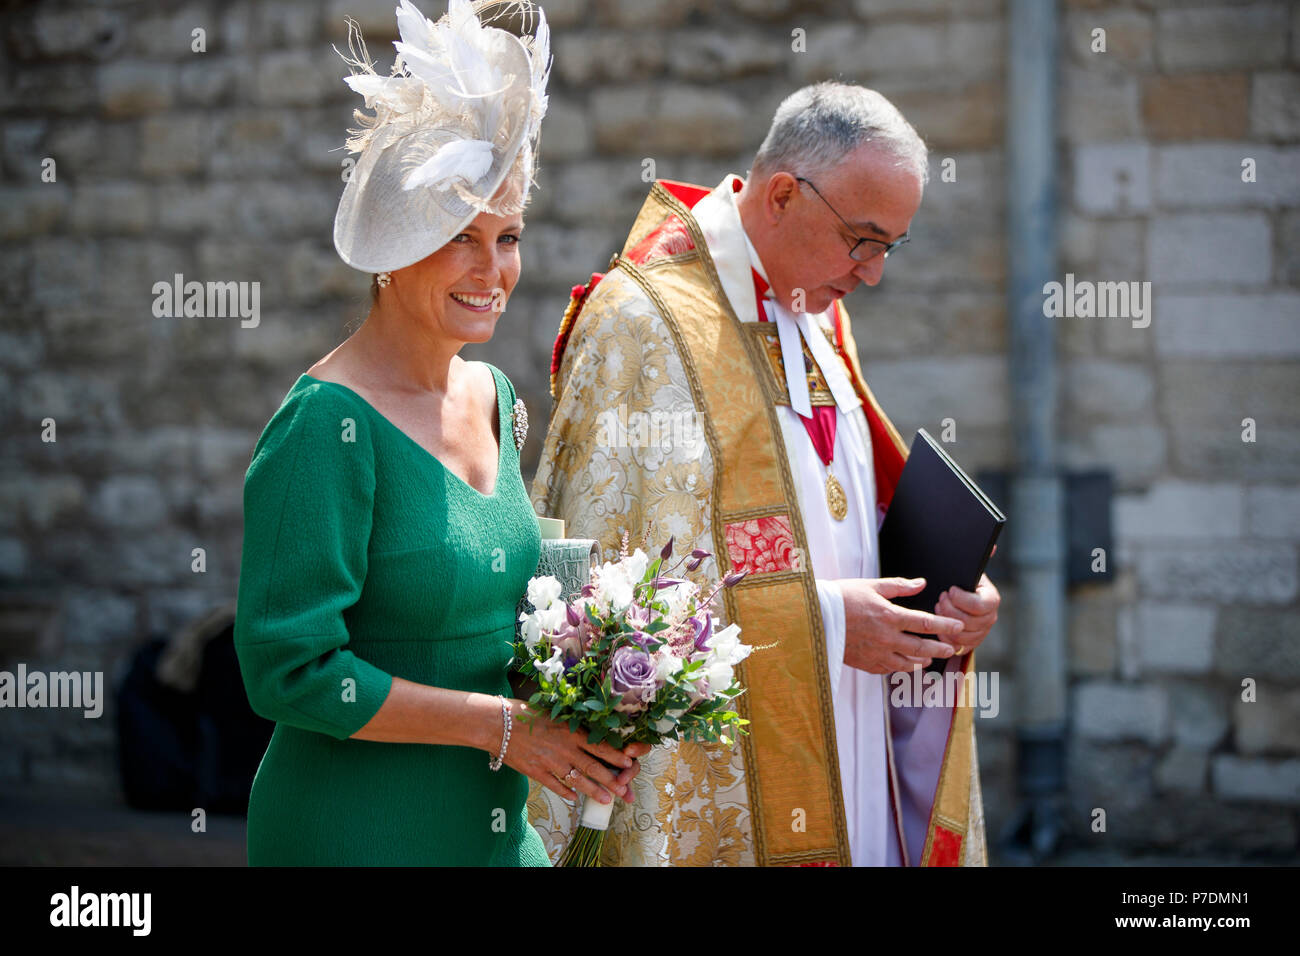 The Countess of Wessex leaves with Dean of Westminster, John Hall after attending a service to celebrate the 70th anniversary of the NHS at Westminster Abbey in London. - Stock Image